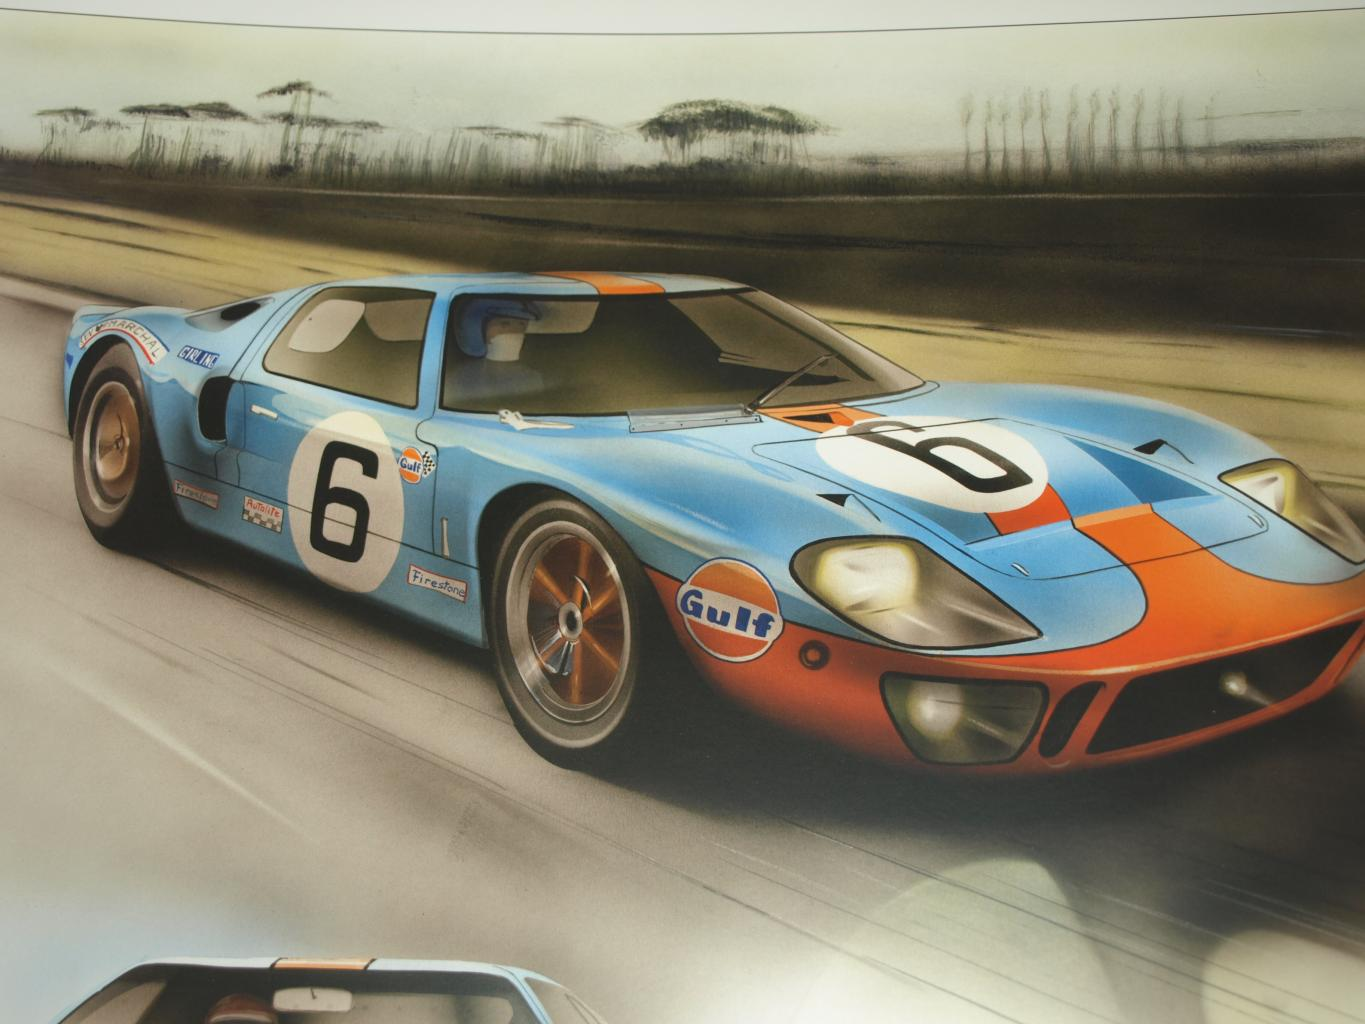 gt40 pictures-p1015811-jpg